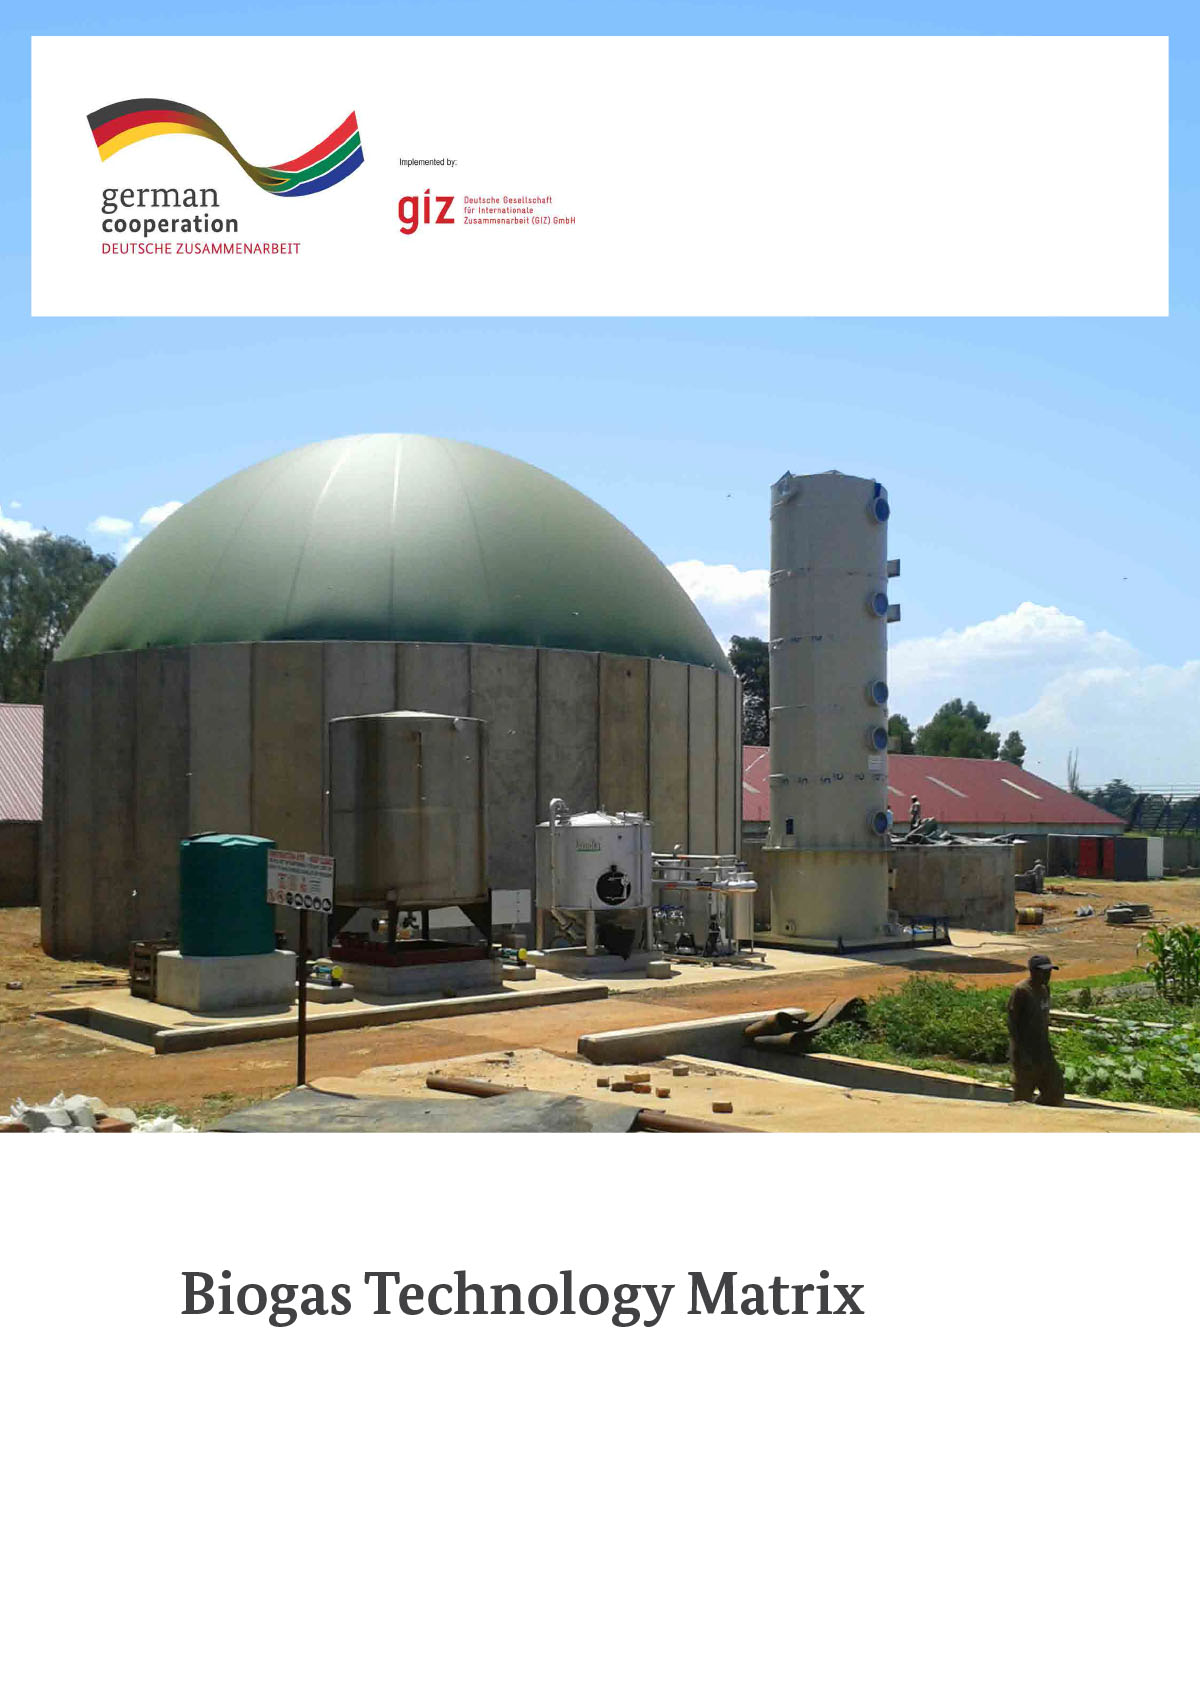 Biogas Technology Matrix